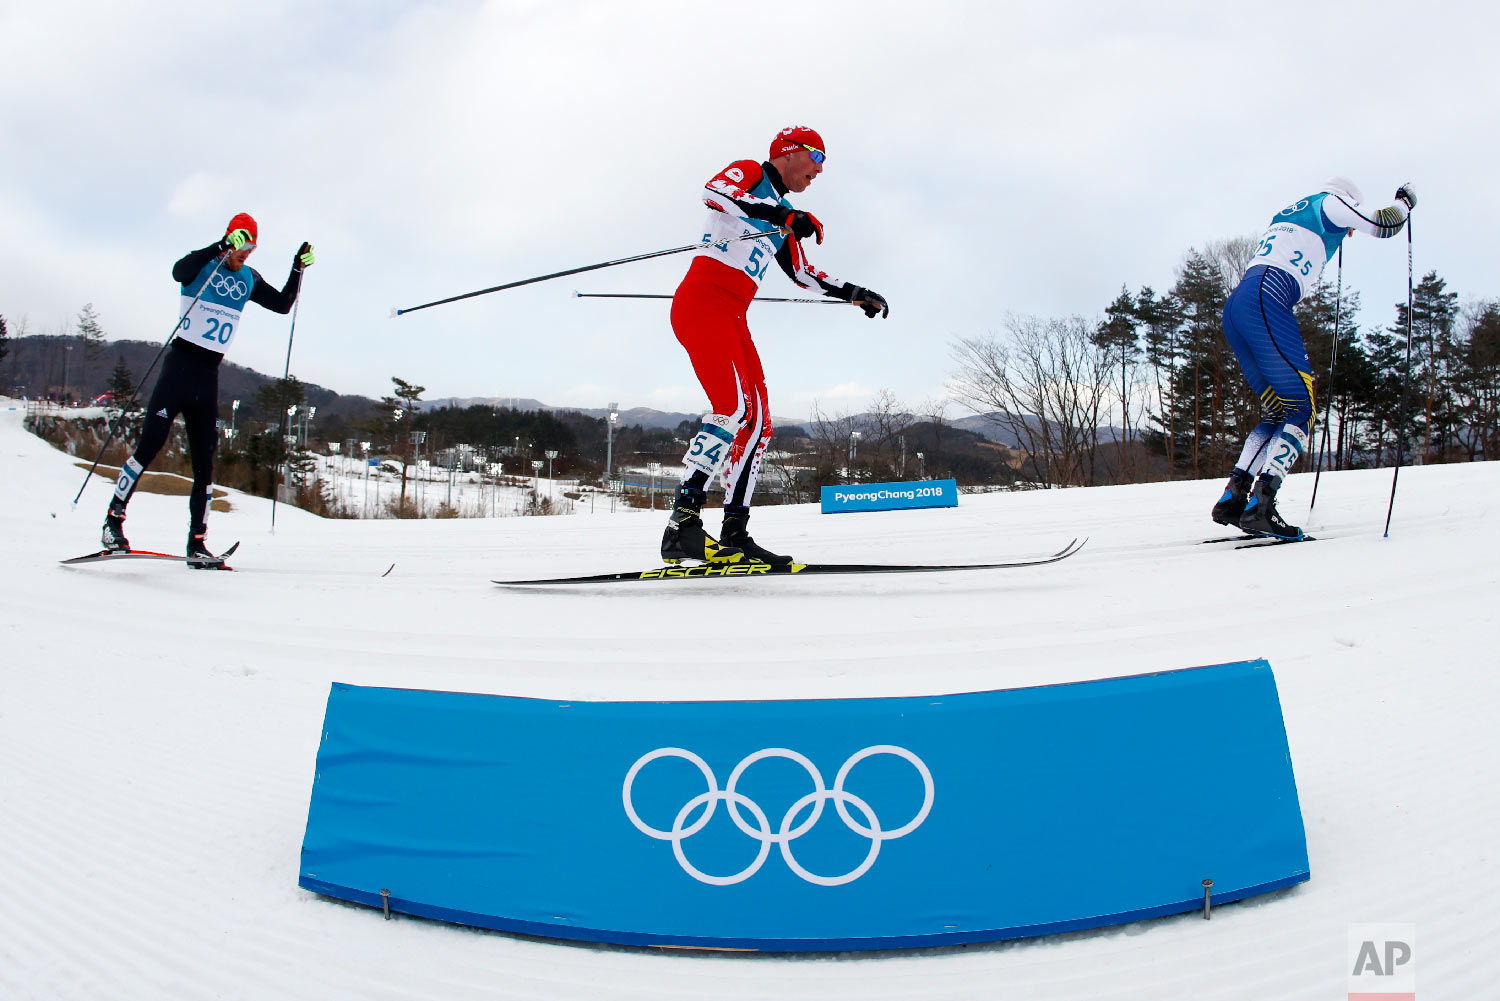 Skiers compete during the men's 15km/15km skiathlon cross-country skiing competition at the 2018 Winter Olympics in Pyeongchang, South Korea, Sunday, Feb. 11, 2018. (AP Photo/Matthias Schrader)